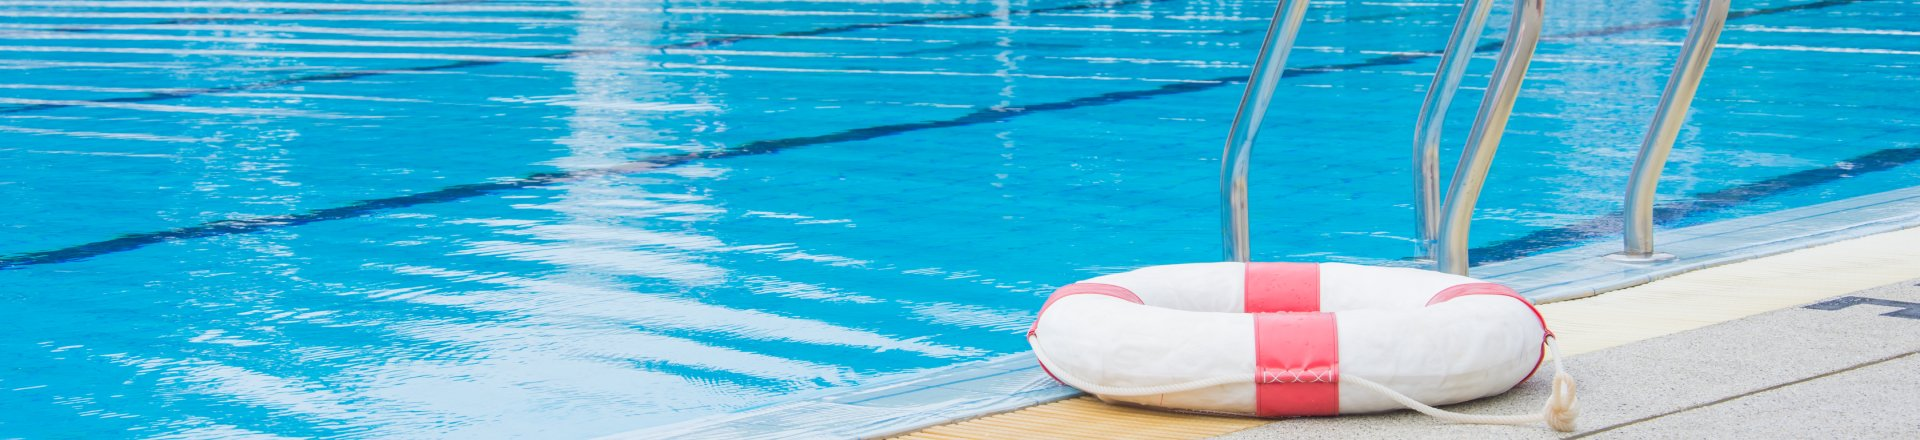 Ring Buoy For Rescue Victim Drowning, Swimming Pool Accidents Lawyer